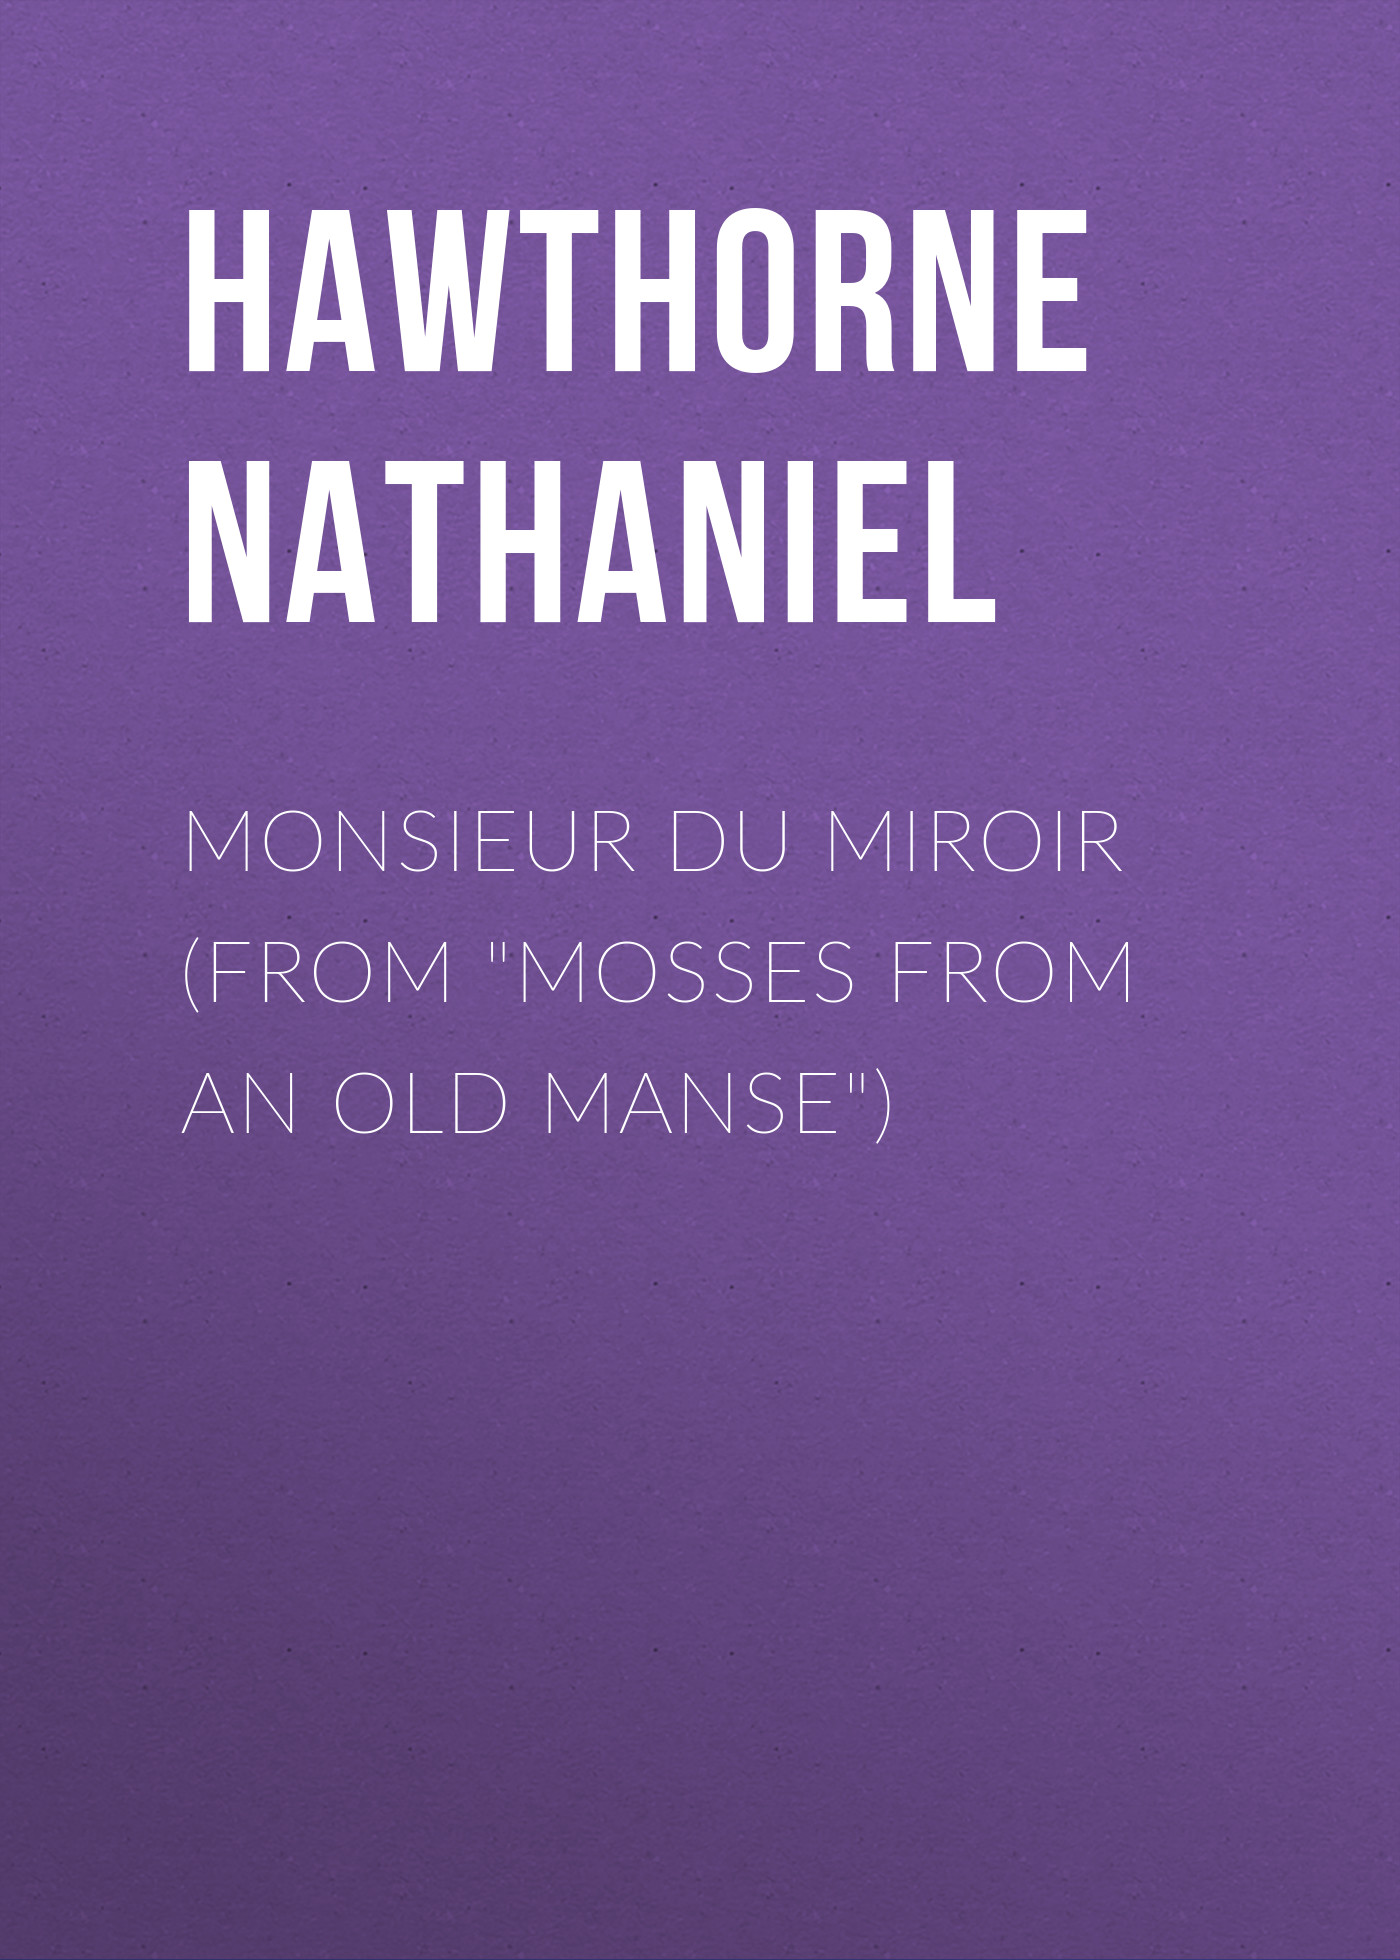 Hawthorne Nathaniel Monsieur du Miroir (From Mosses from an Old Manse) hawthorne nathaniel the hall of fantasy from mosses from an old manse